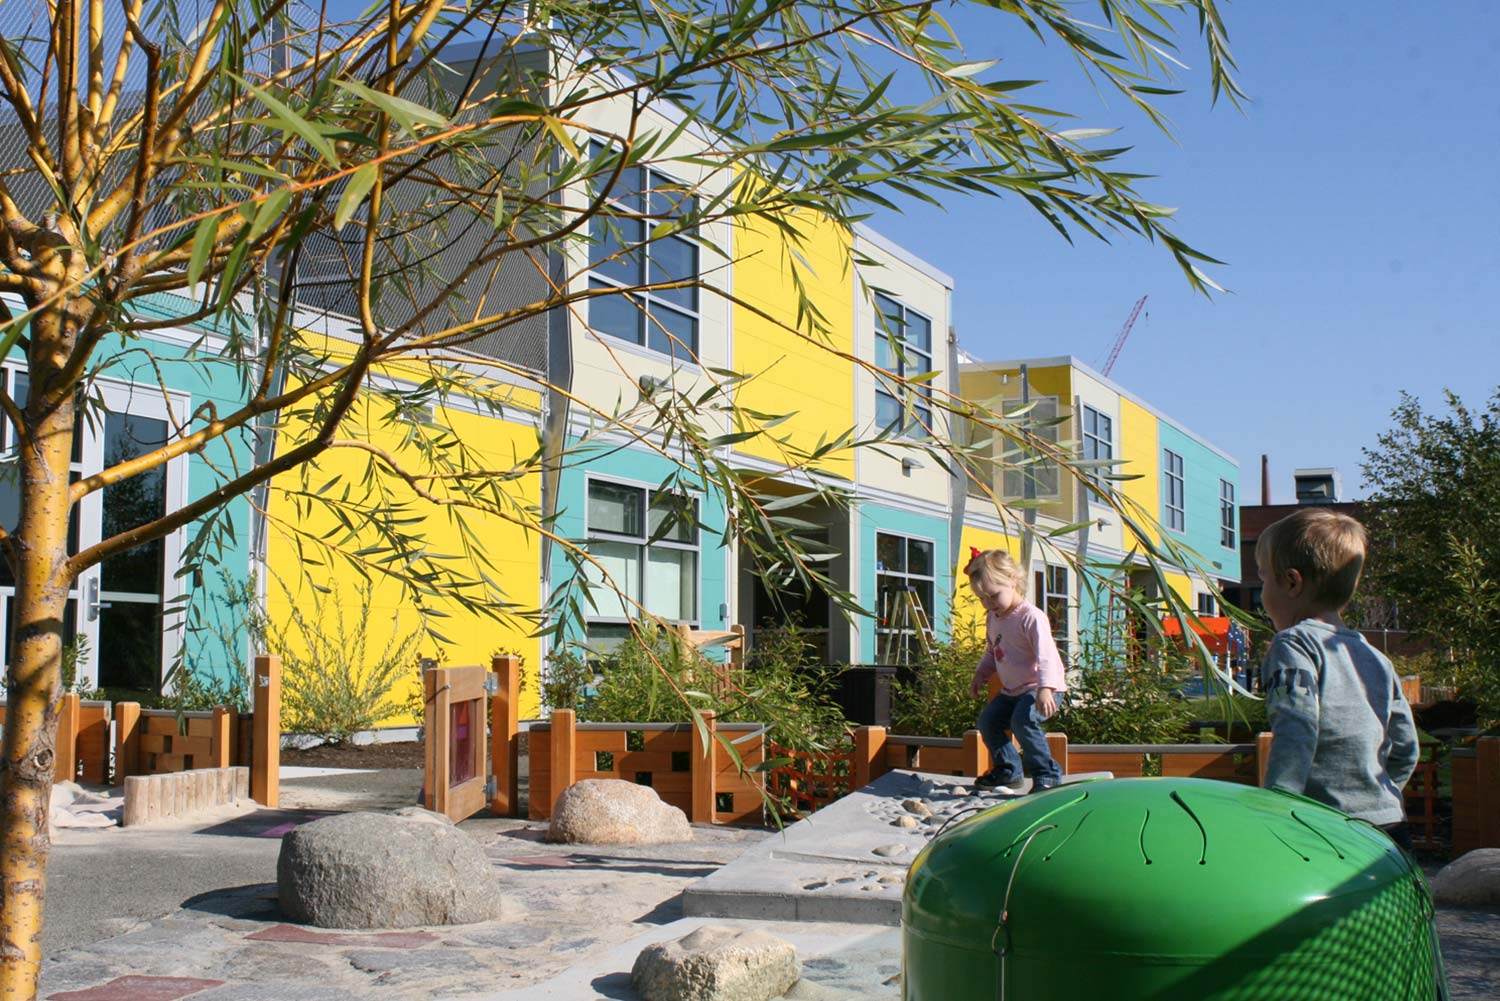 MIT-Childcare-Center_children-playing-willow-boulder-landscape_Klopfer-Martin.jpg